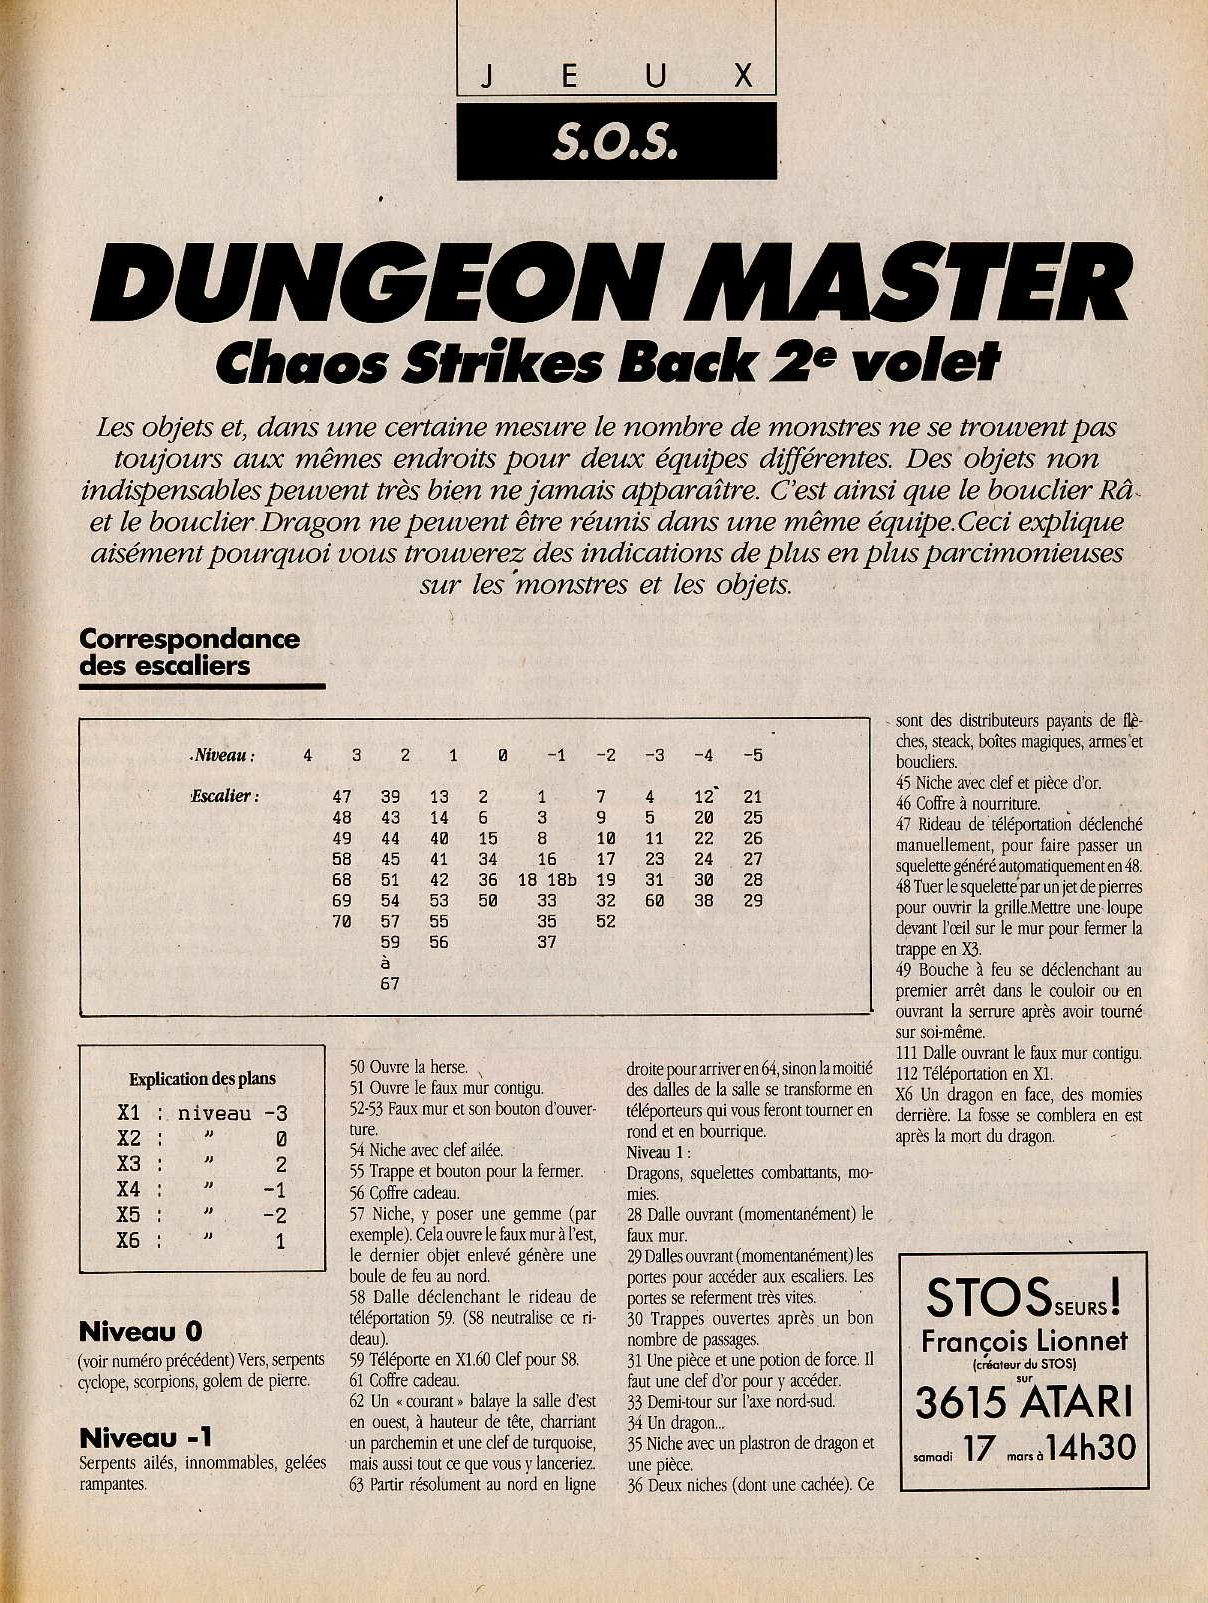 Chaos Strikes Back Hints published in French magazine 'Atari Magazine', Issue #10 March 1990, Page 55